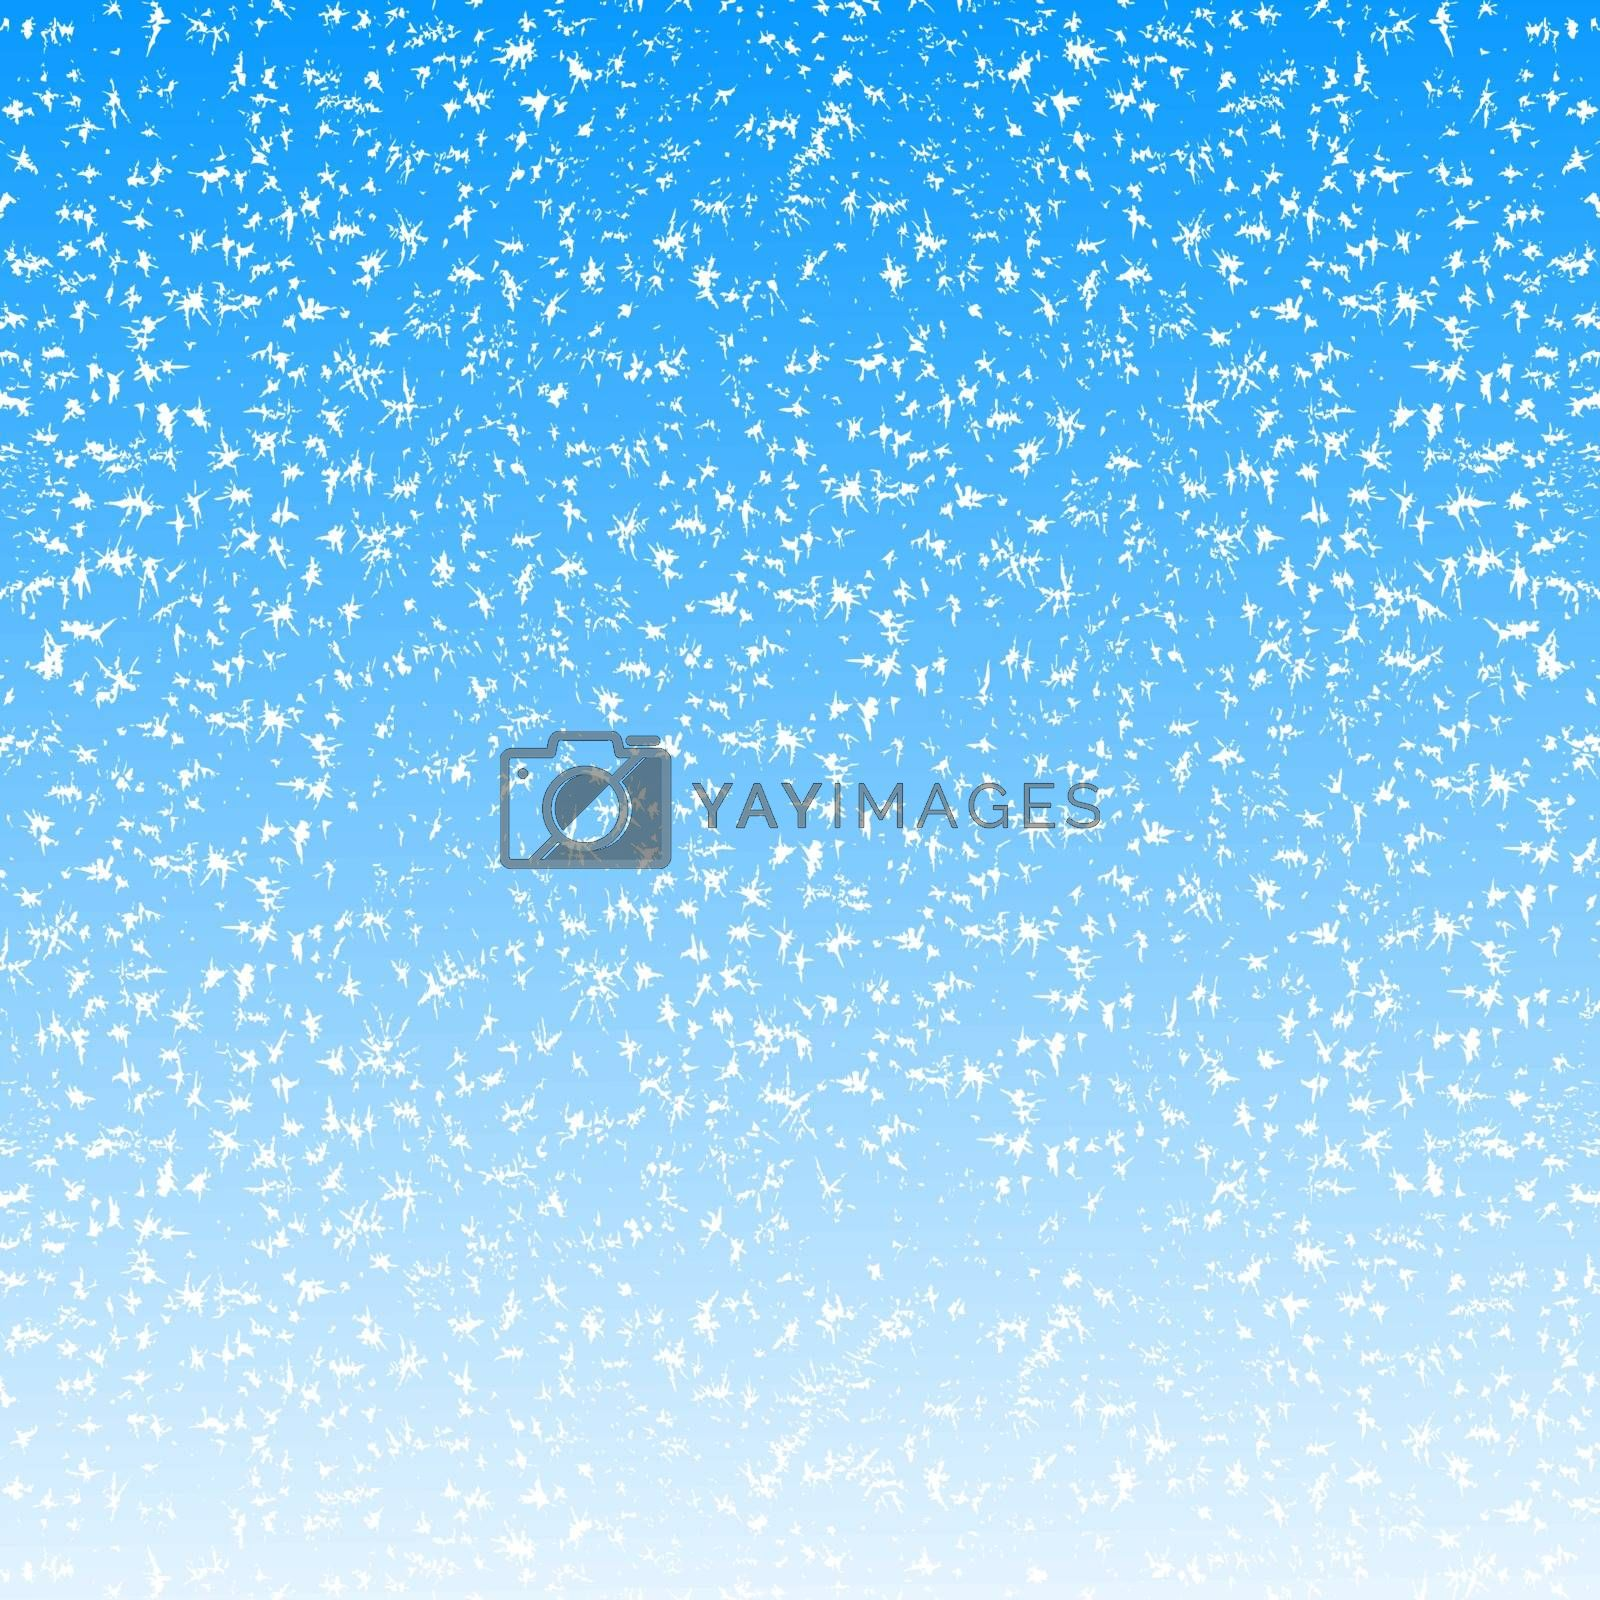 Abstract Christmas background with snowflakes. Vector illustration.